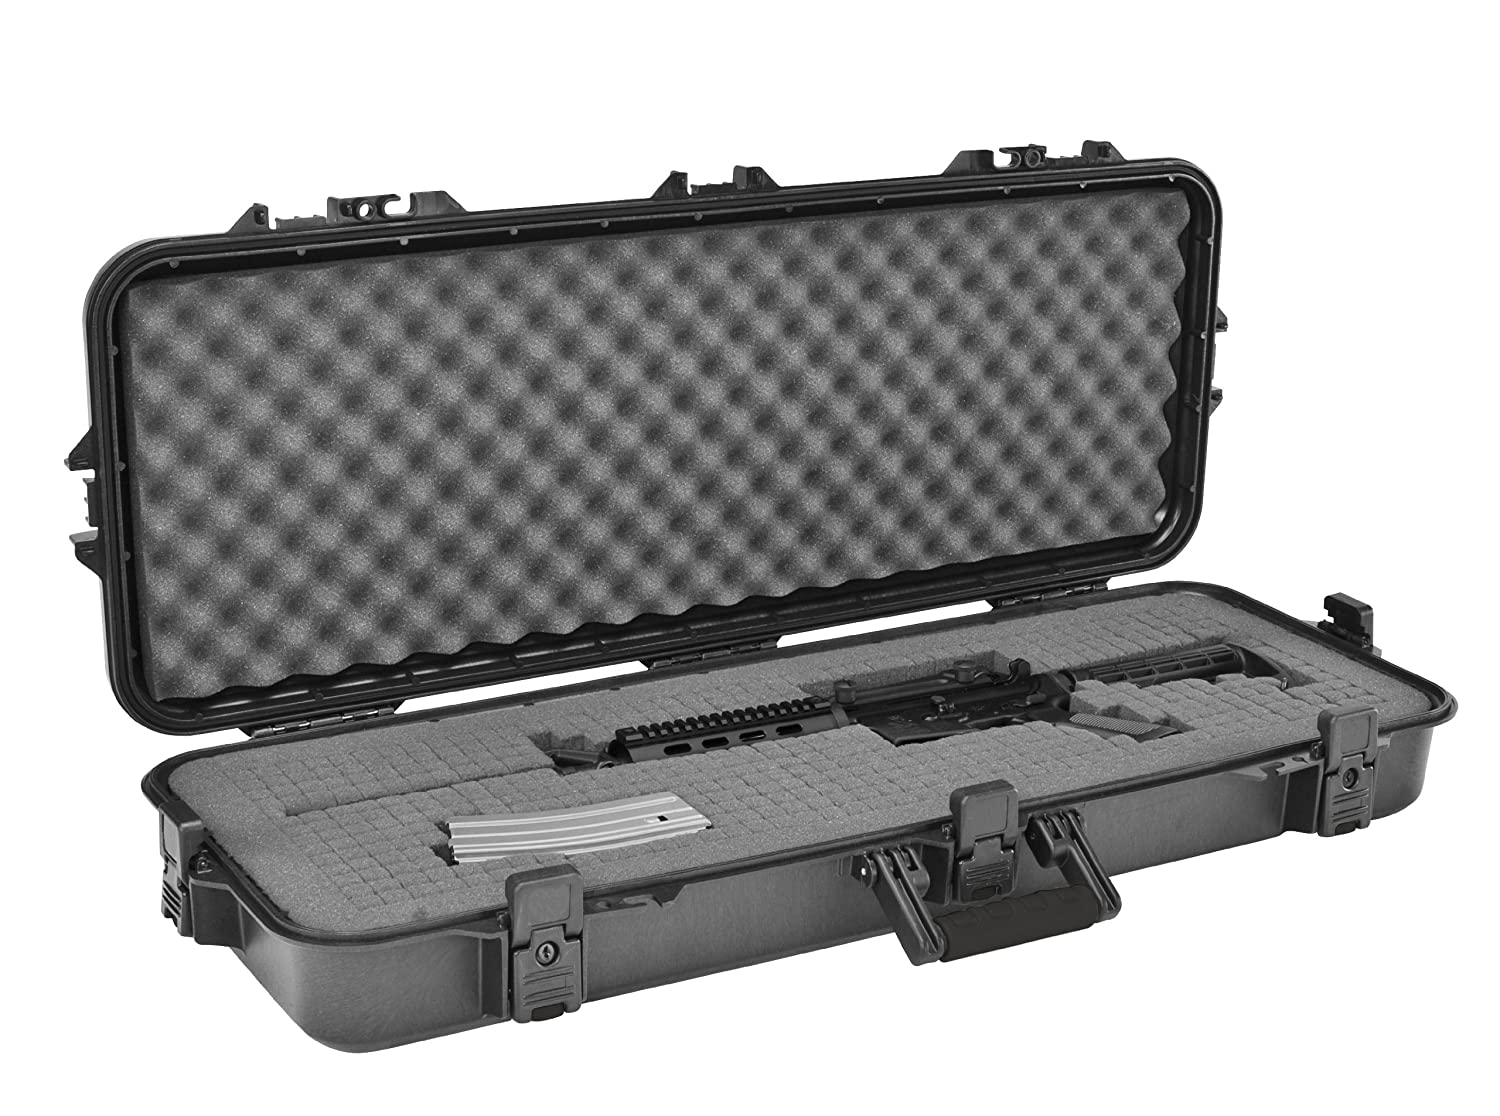 Plano All Weather Tactical Gun Case, 42-Inch PLFL9 108442